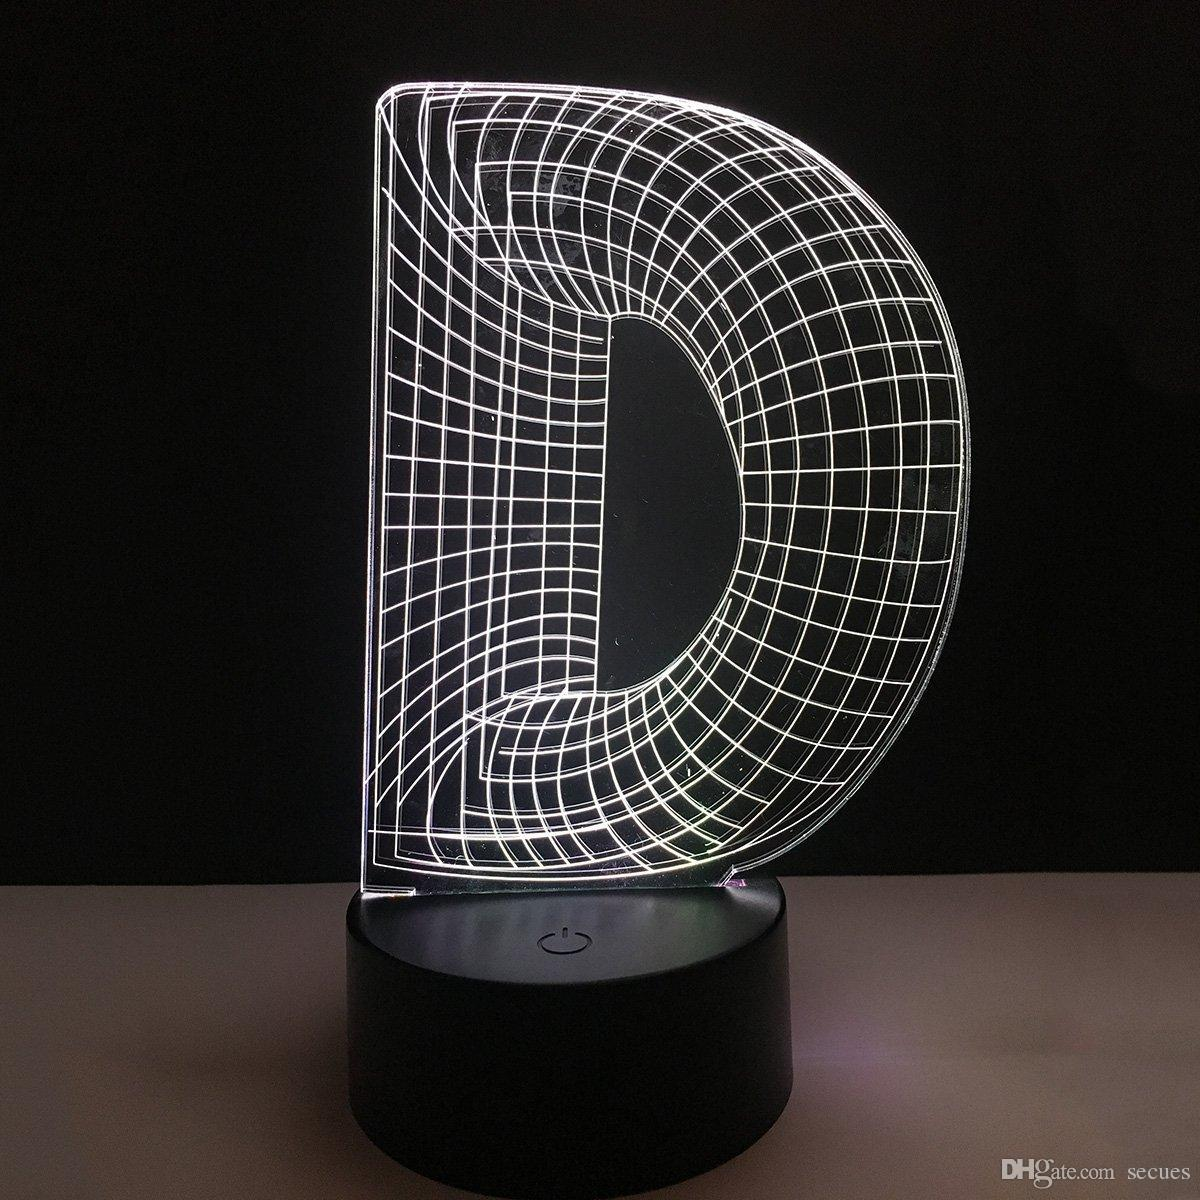 D Letters Alphabet 3D Illusion Decoration Lamp Night Light DC 5V USB Powered 5th Battery Wholesale Dropshipping